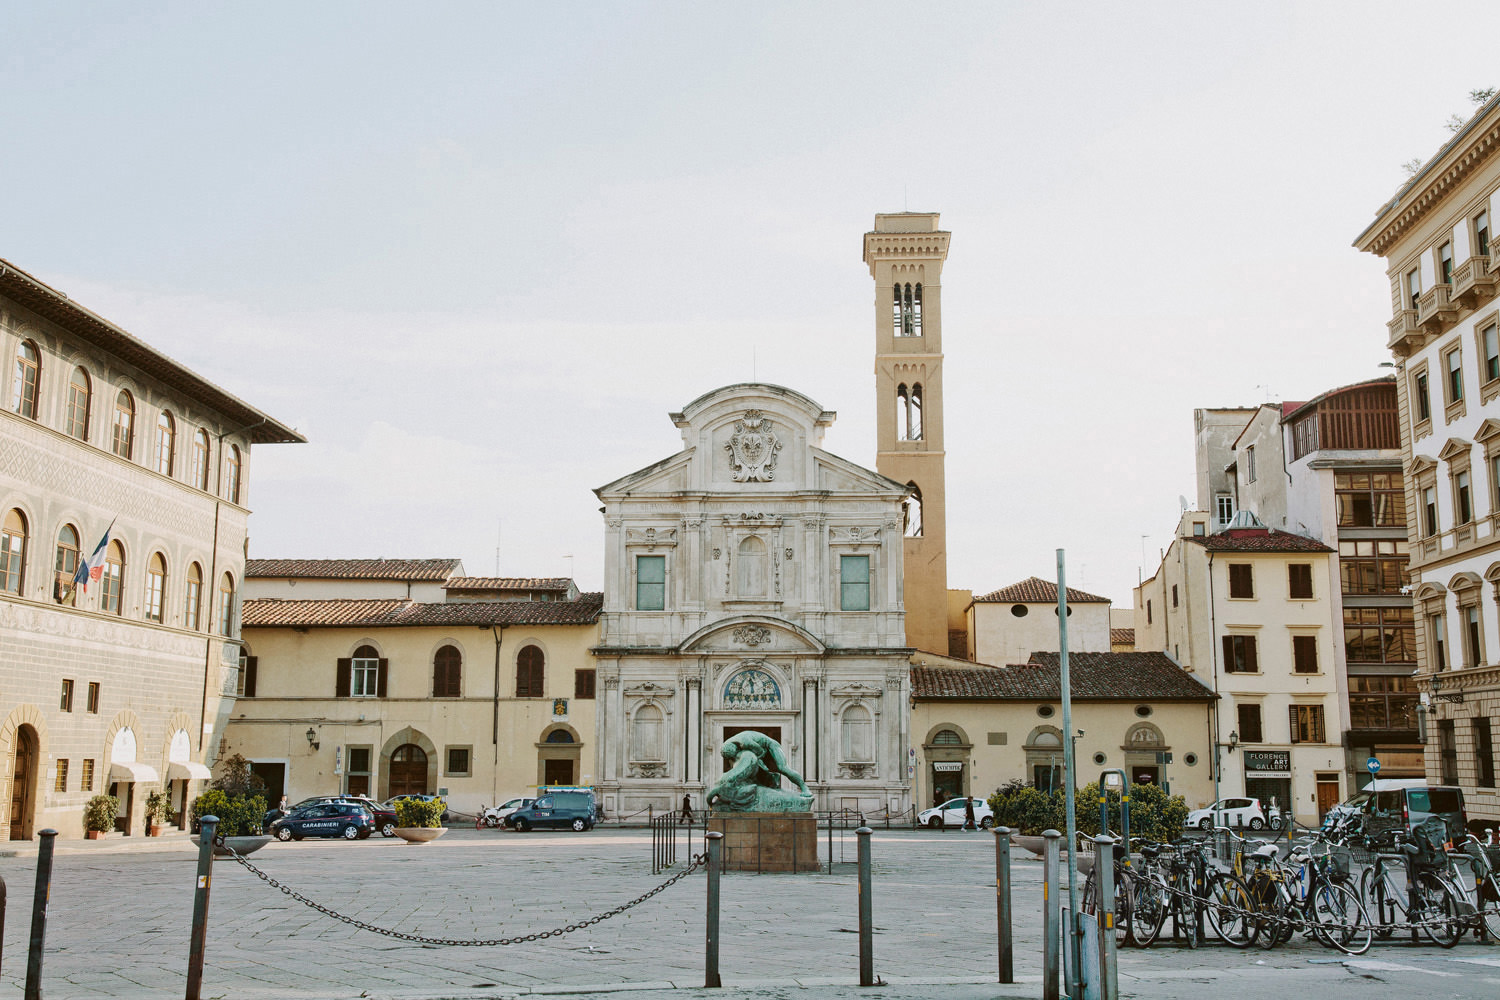 town square in florence